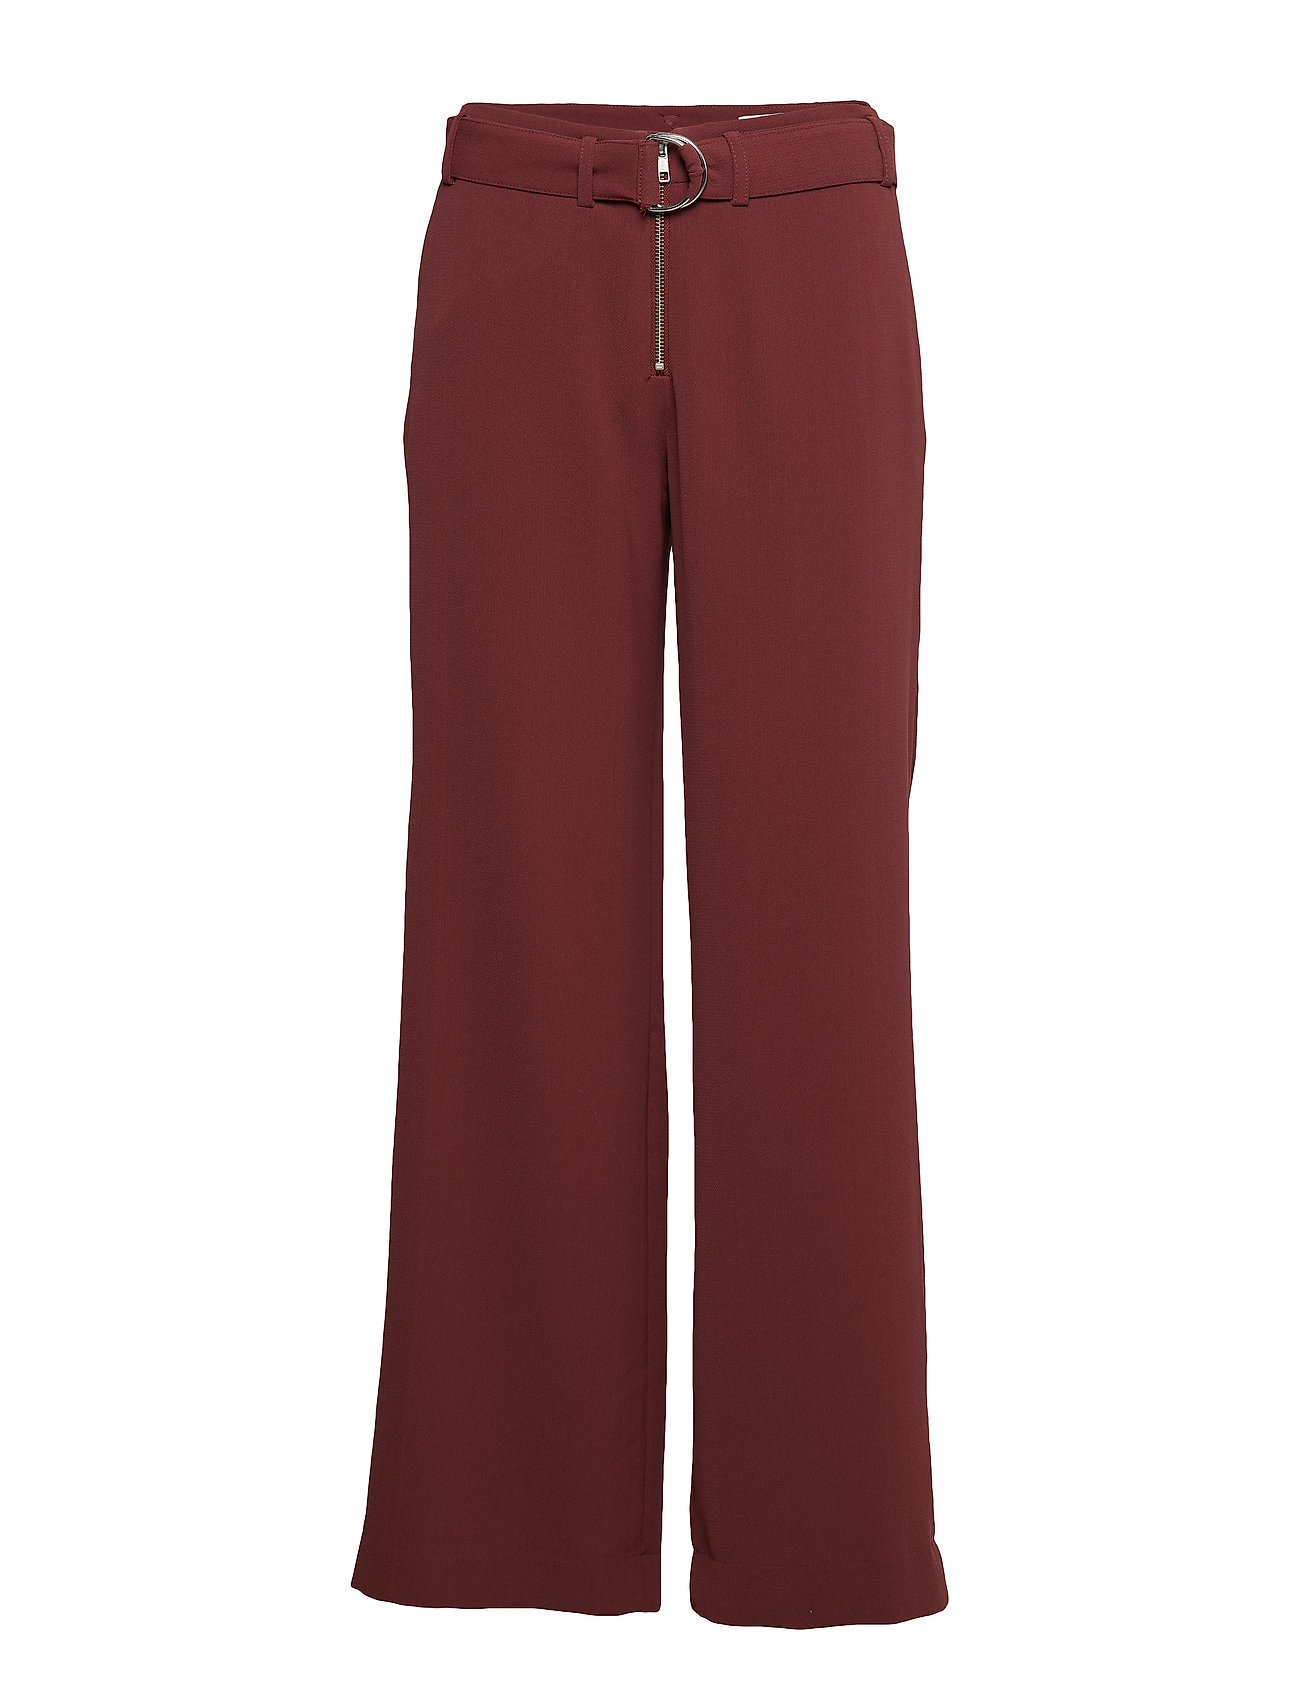 Twist & Tango Sheila Trousers - DARK WINE